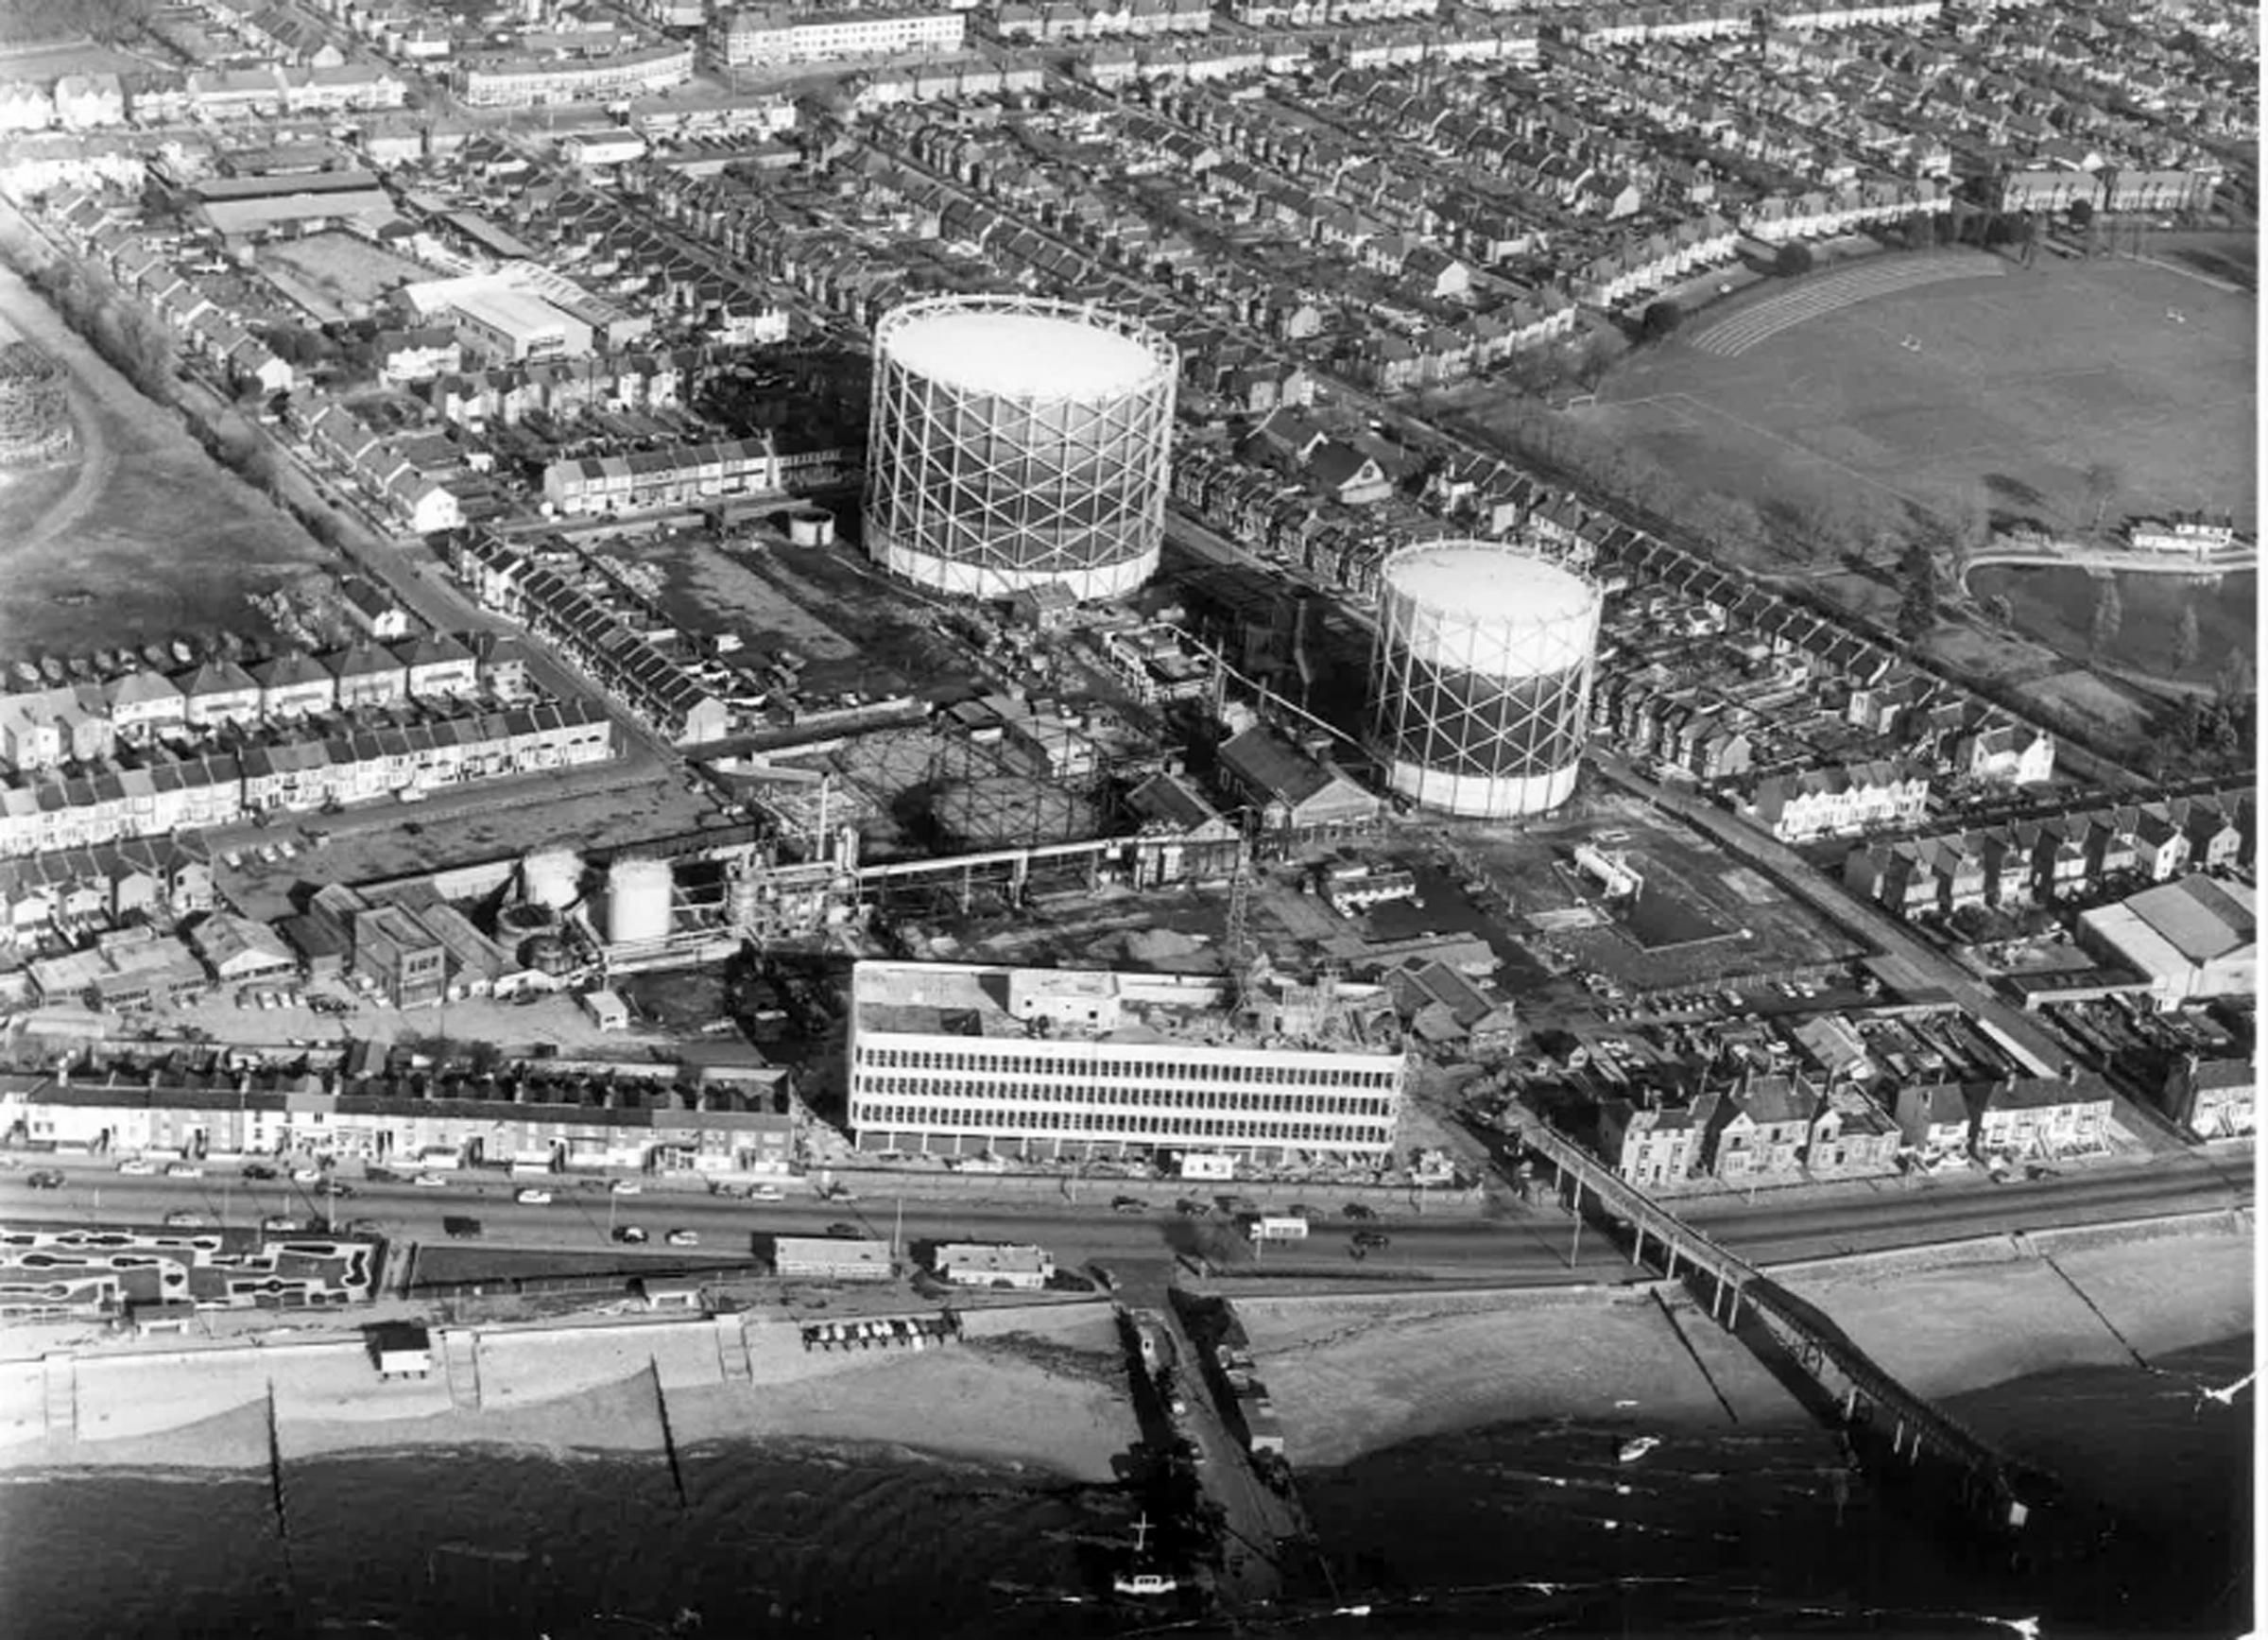 The Old Gasworks, Southend, 1970. My grandfather, William (Bill) Baldock, used to work here.